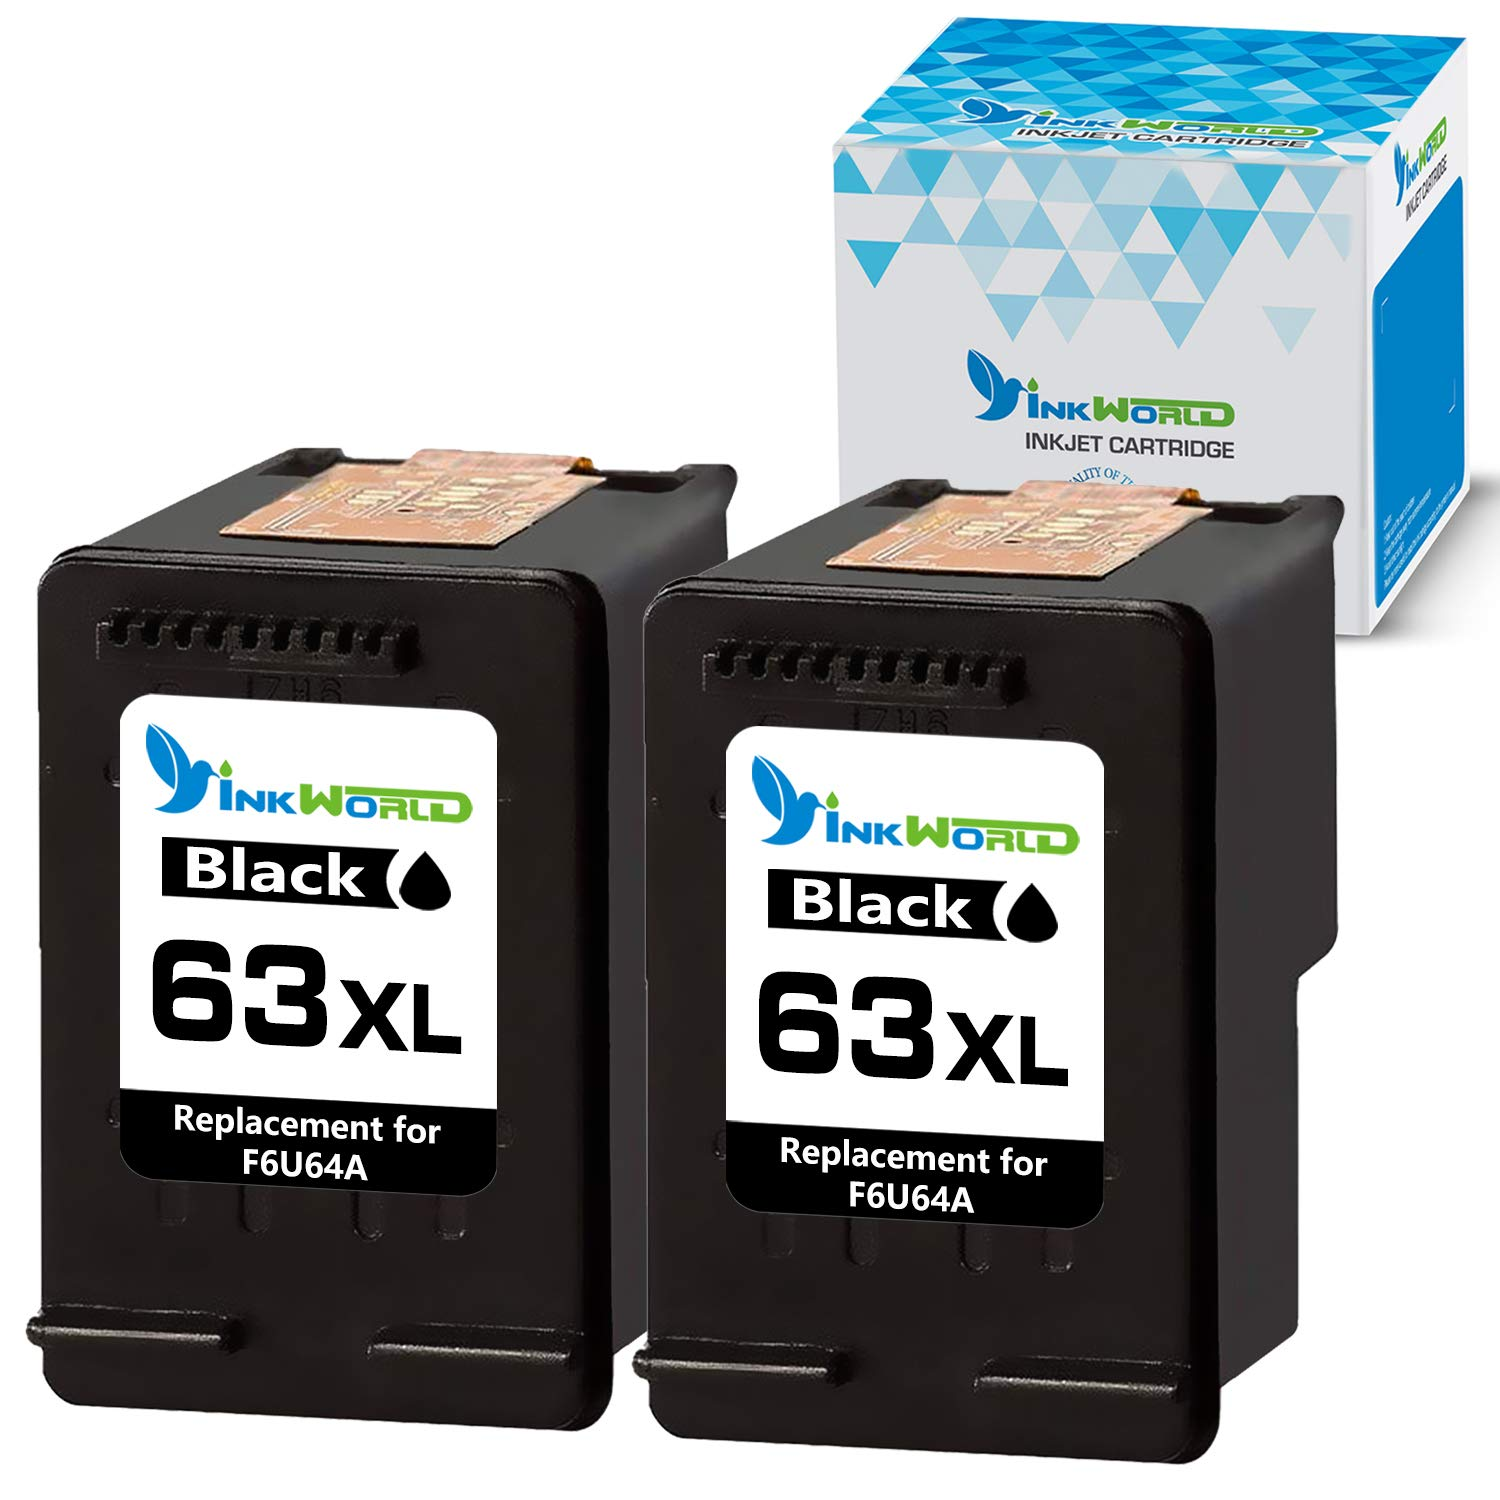 InkWorld Remanufactured 63XL 2-Pack Ink Cartridge Replacement for HP 63 XL to Use with OfficeJet 5255 3830 3834 4650 4655 4652 DeskJet 1112 3630 3634 2132 3639 3636 3632 Envy 4520 Printer (2 Black)